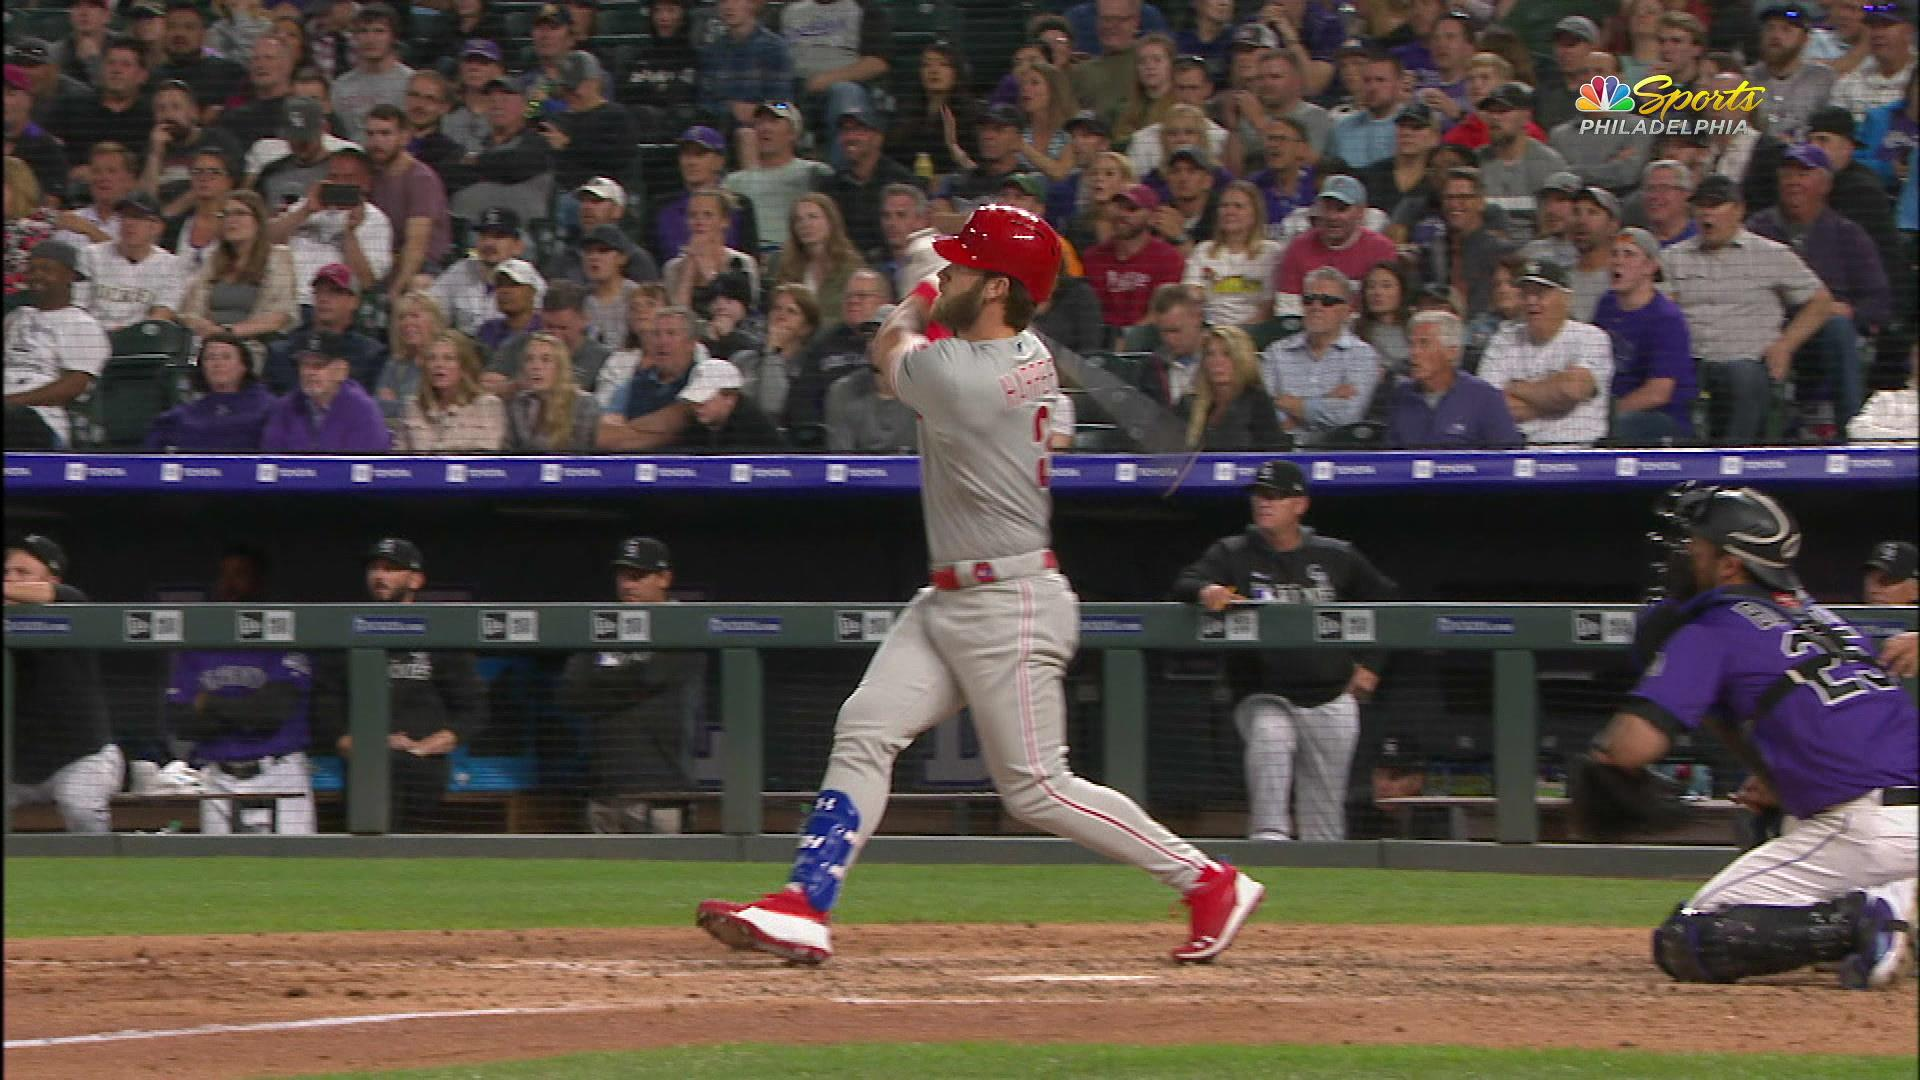 Bryce Harper crushes a ball to give the Phillies a 7-3 lead